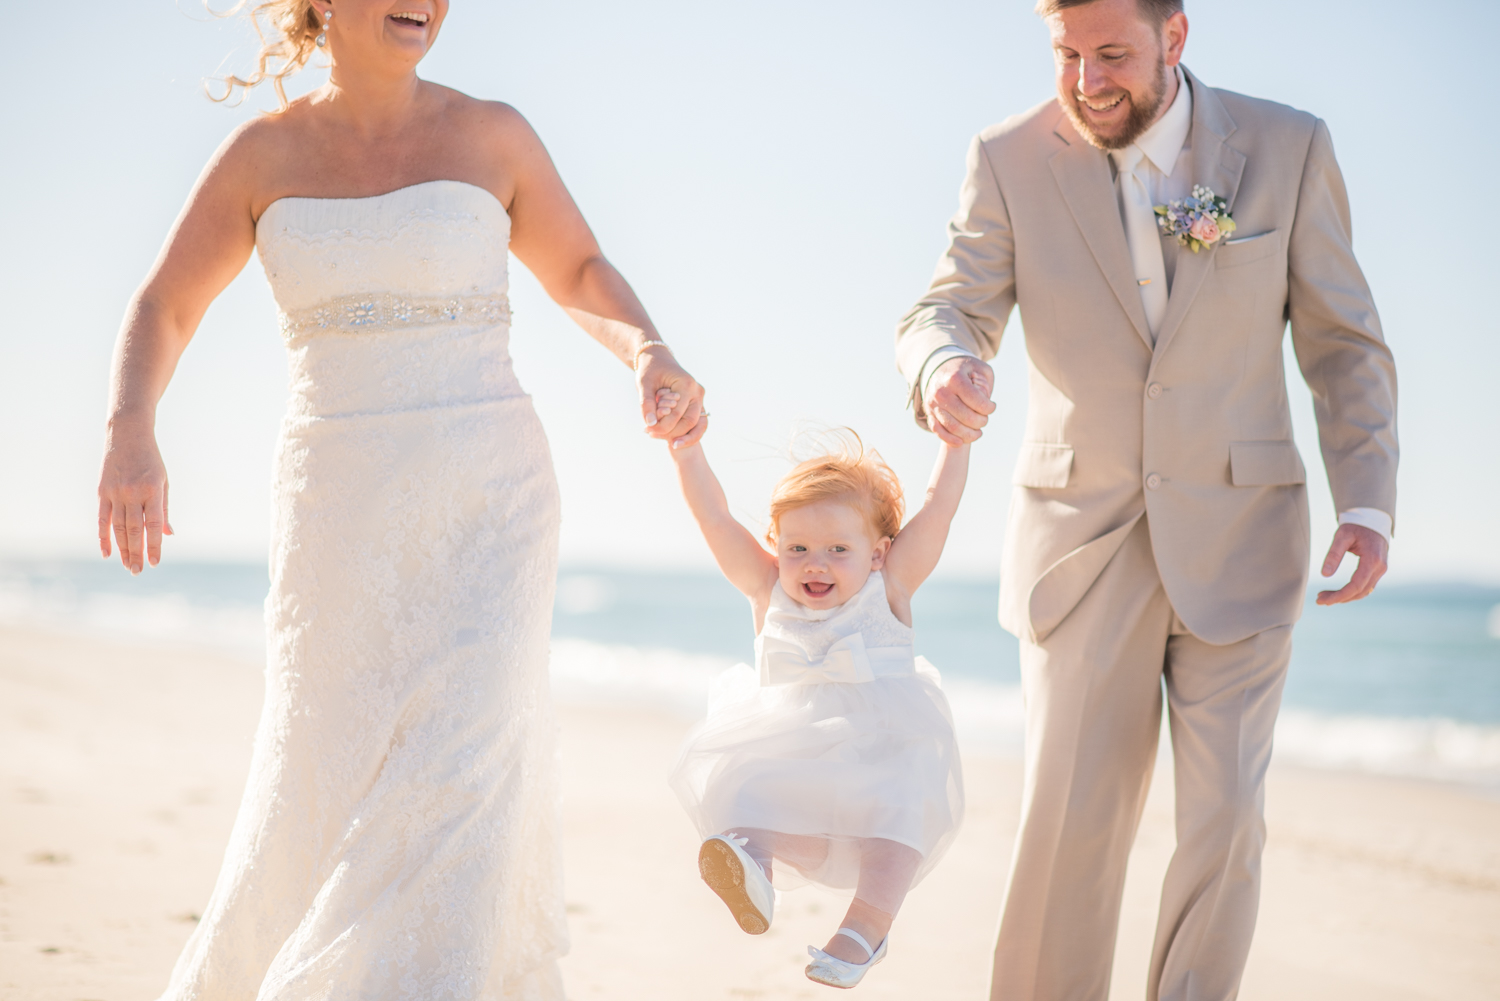 newlyweds with their baby girl on the beach